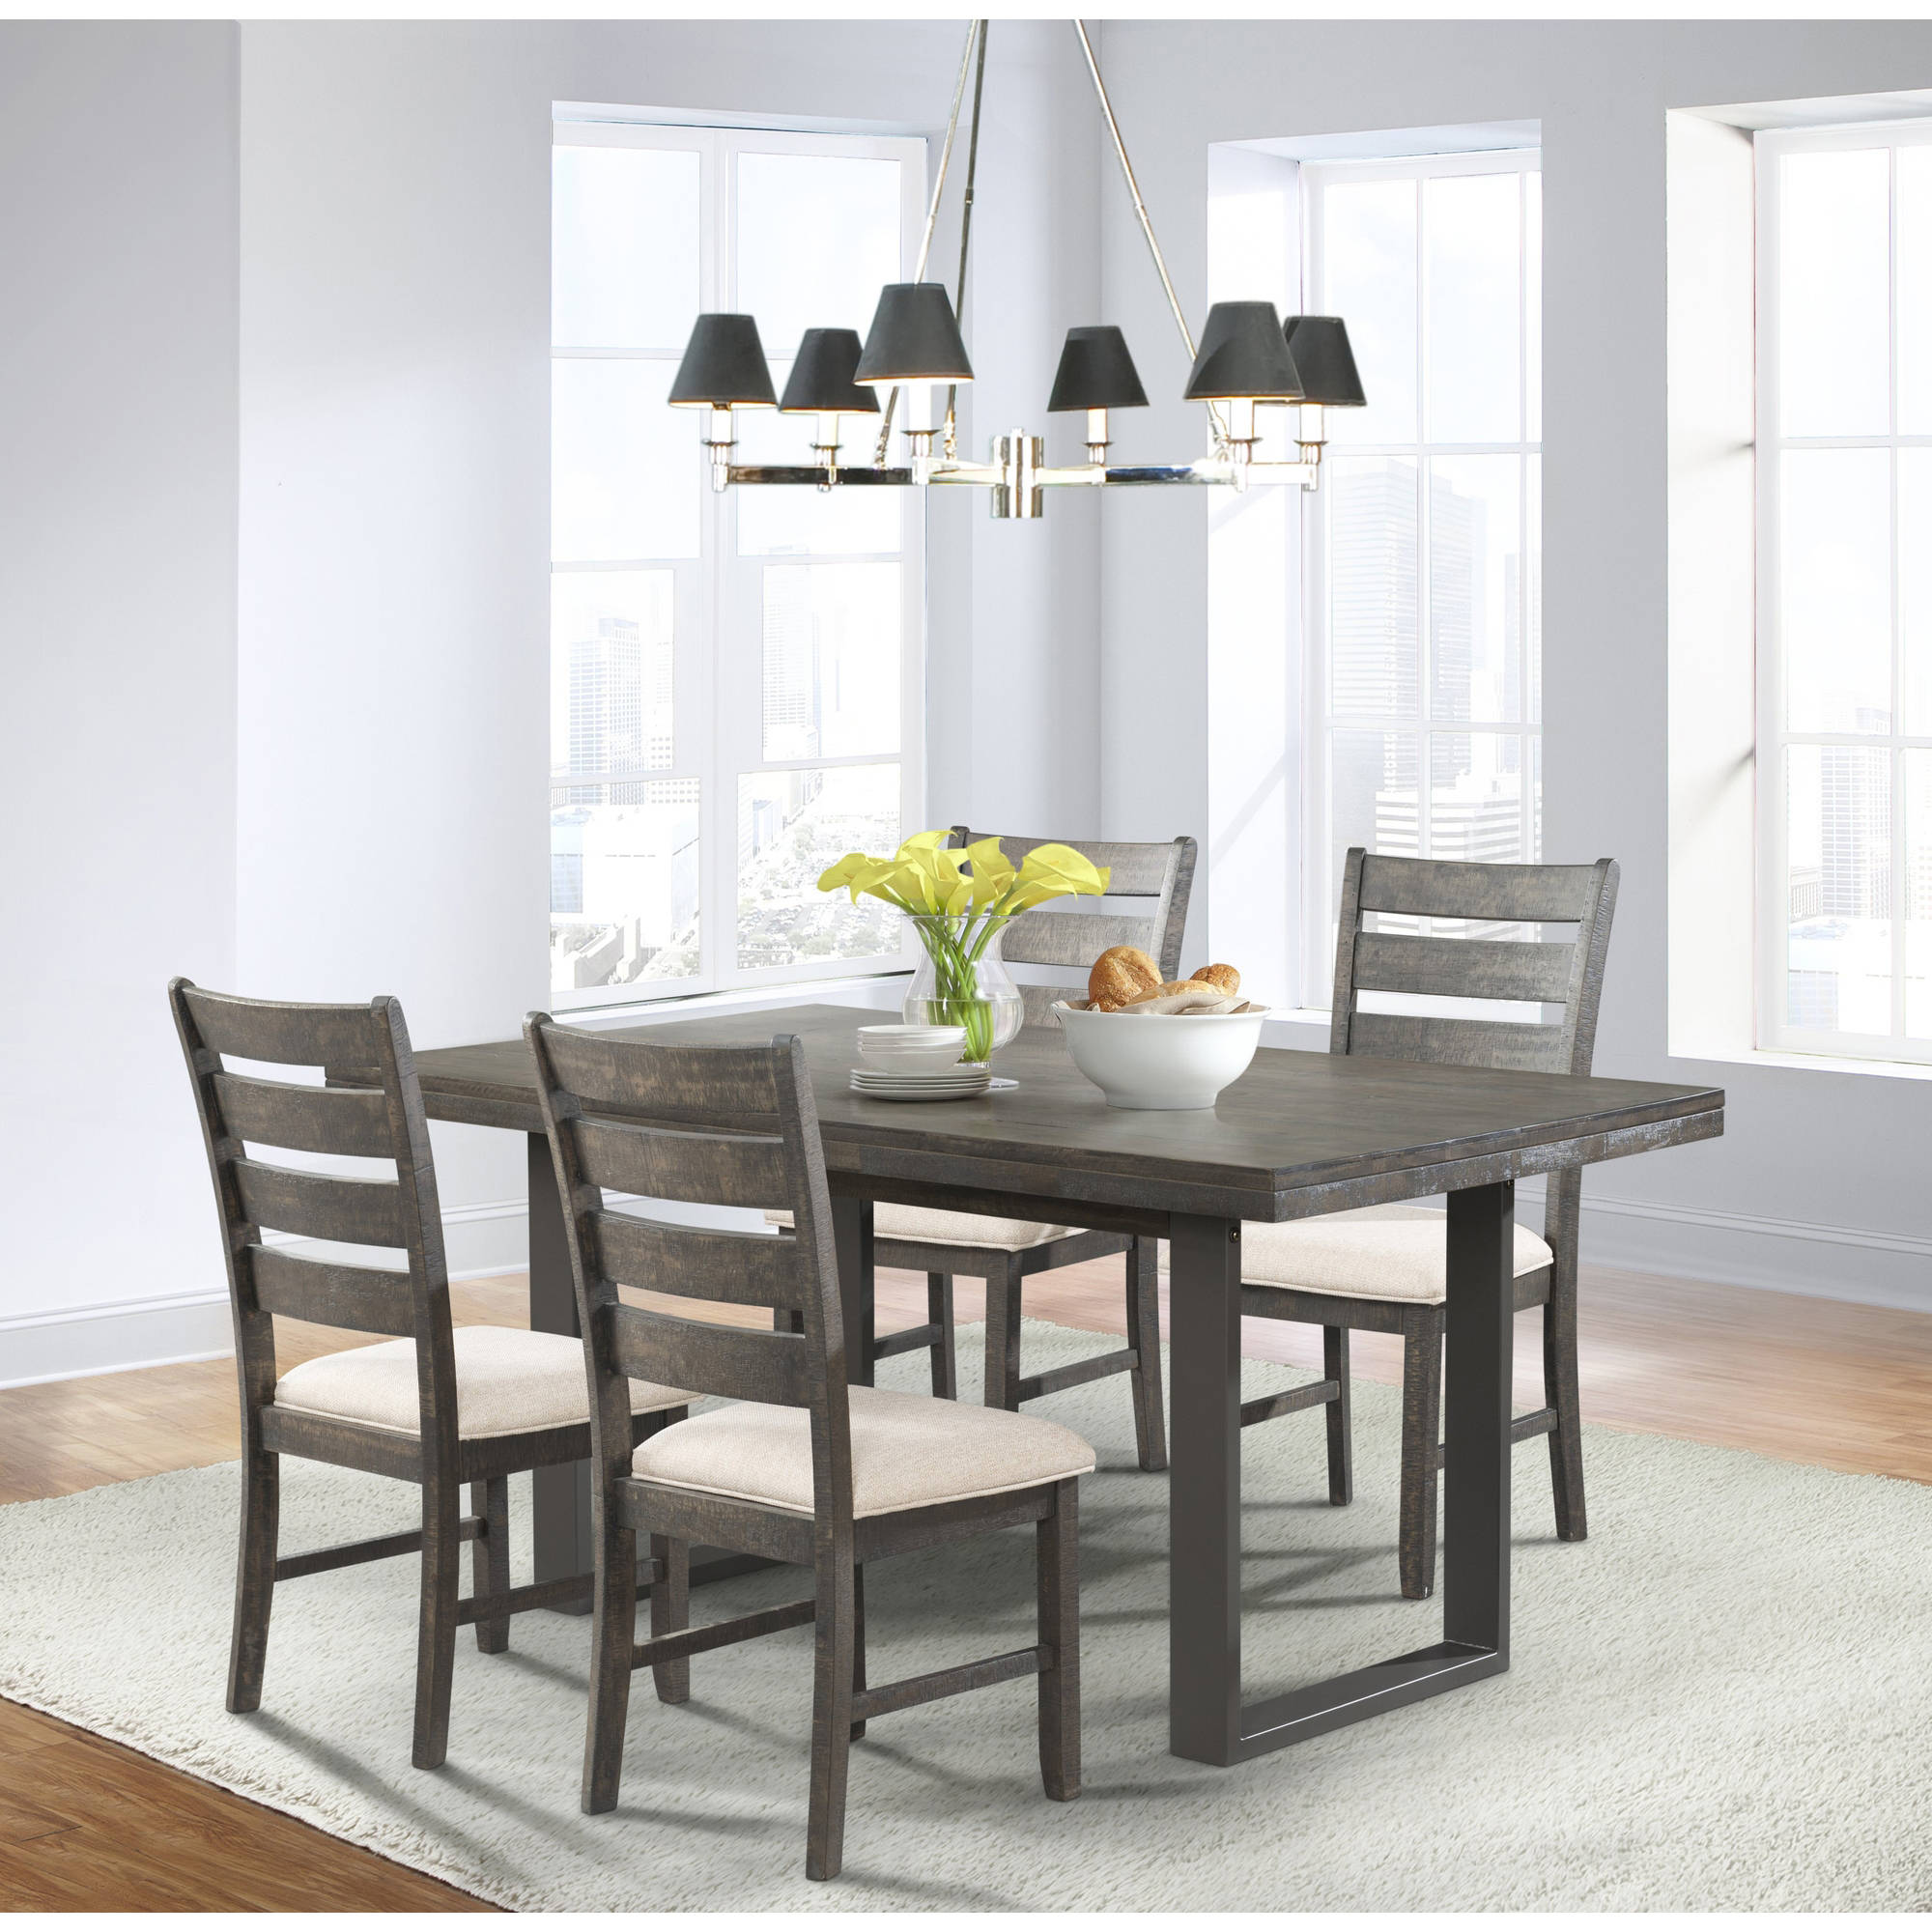 Picket House Furnishings Sullivan 5-Piece Dining Set-Table and 4 Side Chairs